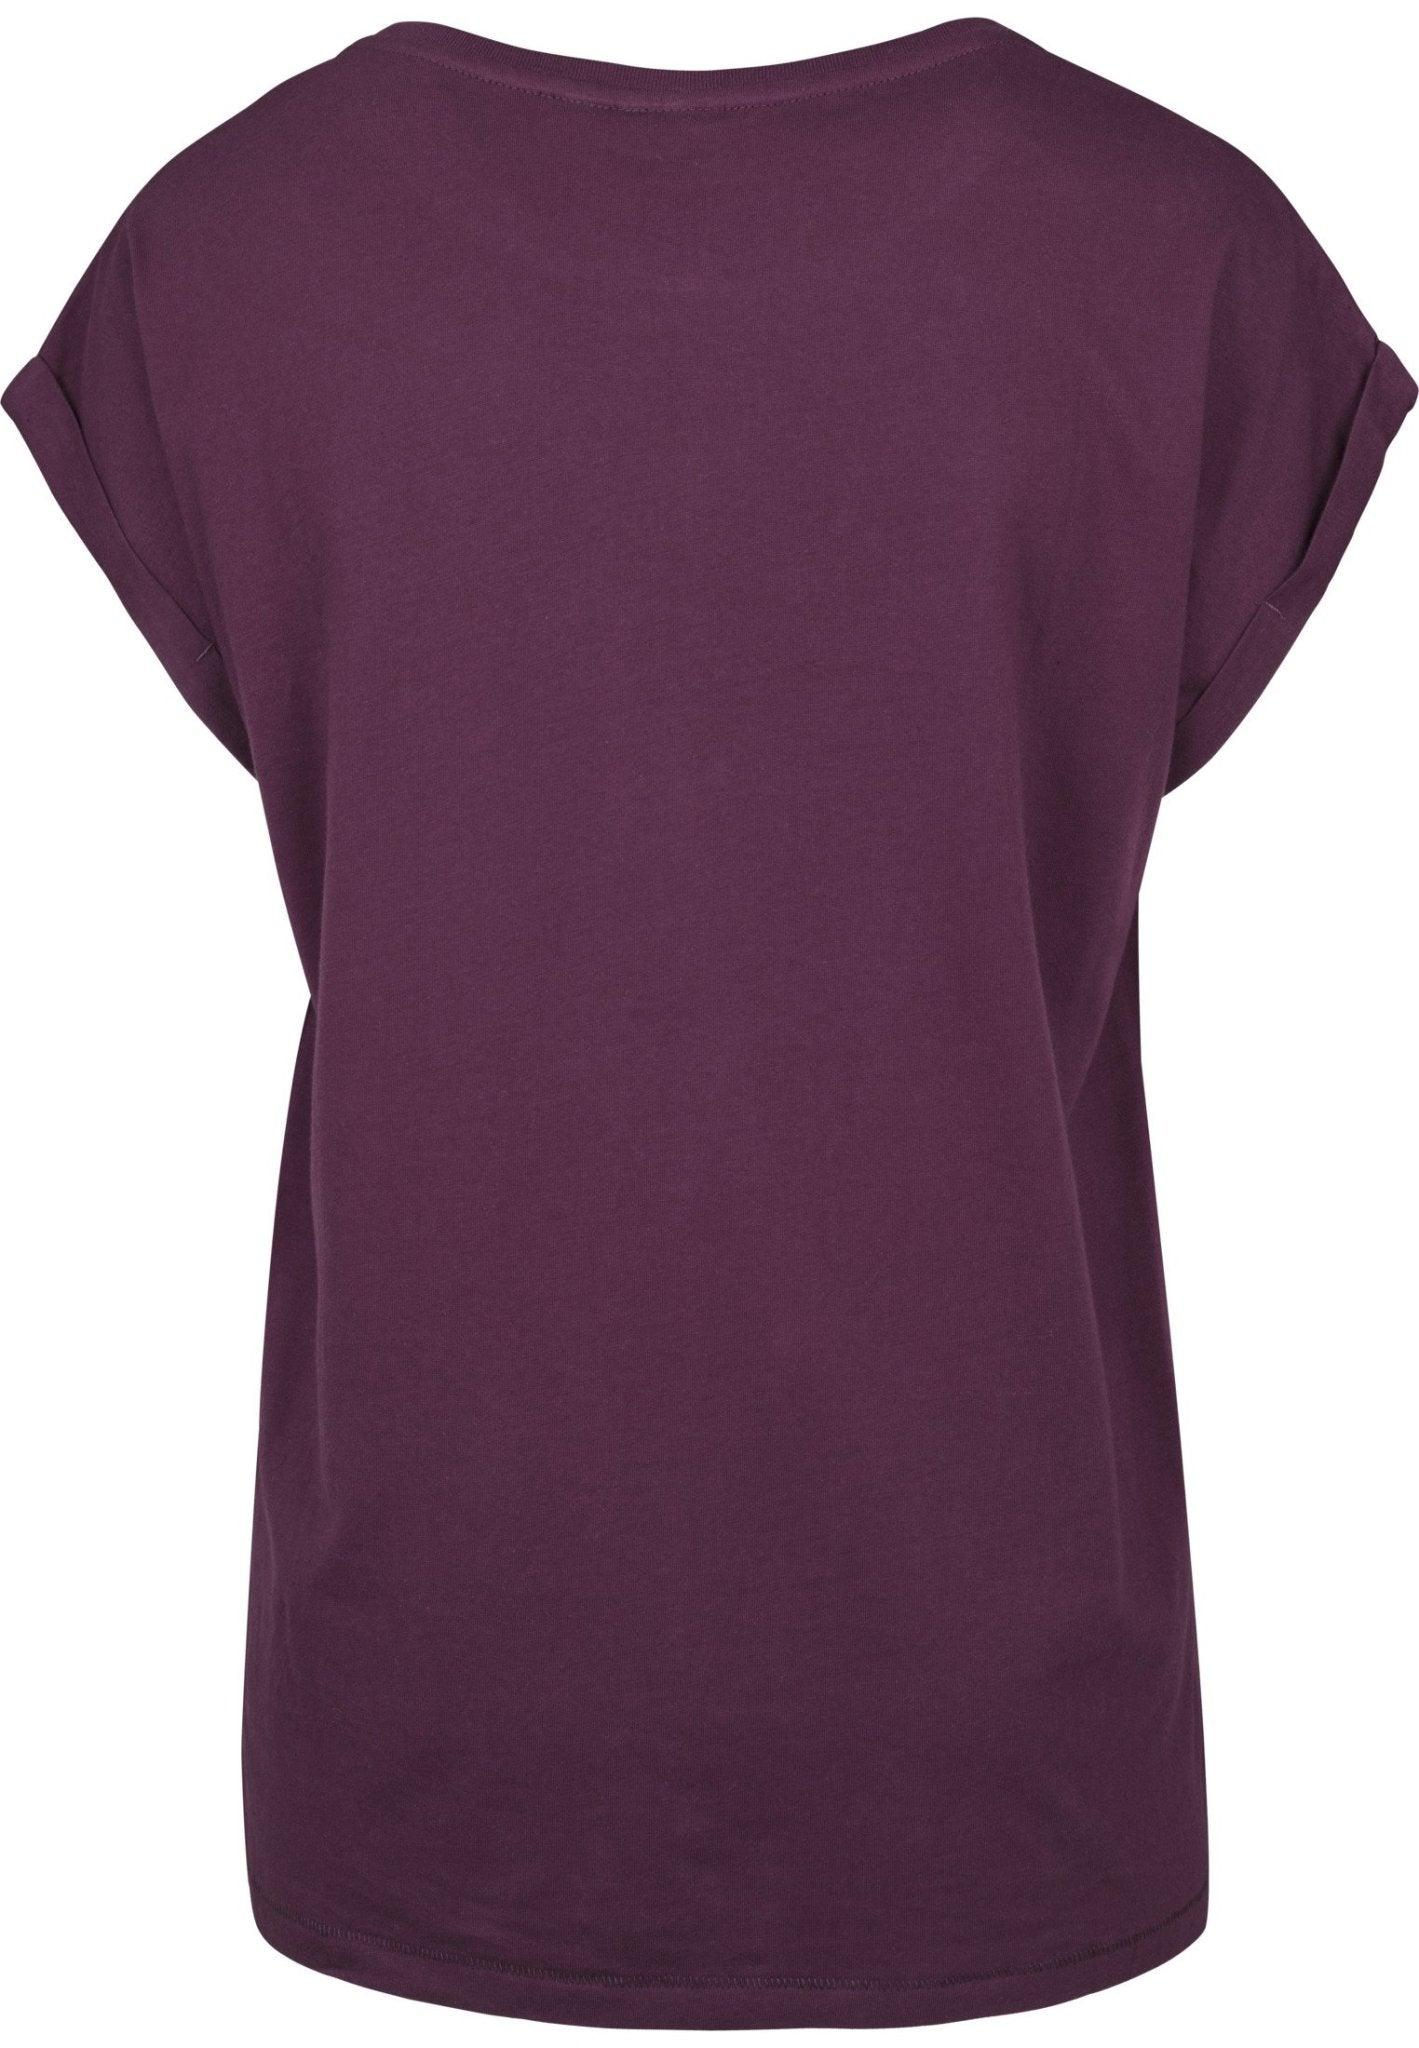 Ladies Extended Shoulder Tee - Inexorebel